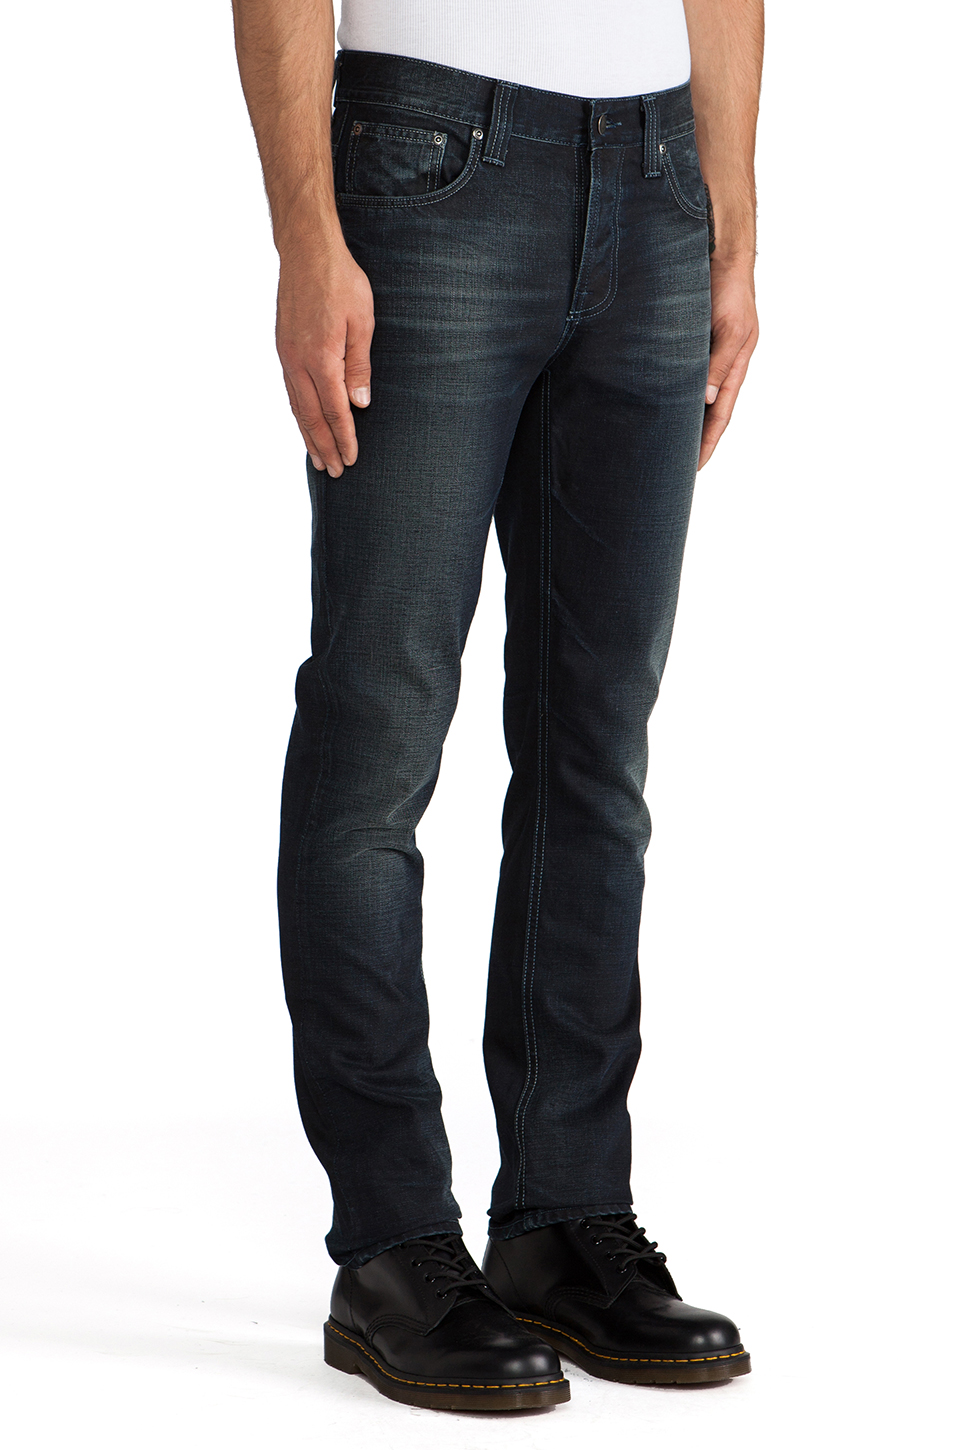 Nudie Jeans Grim Tim in Org. Black Indigo